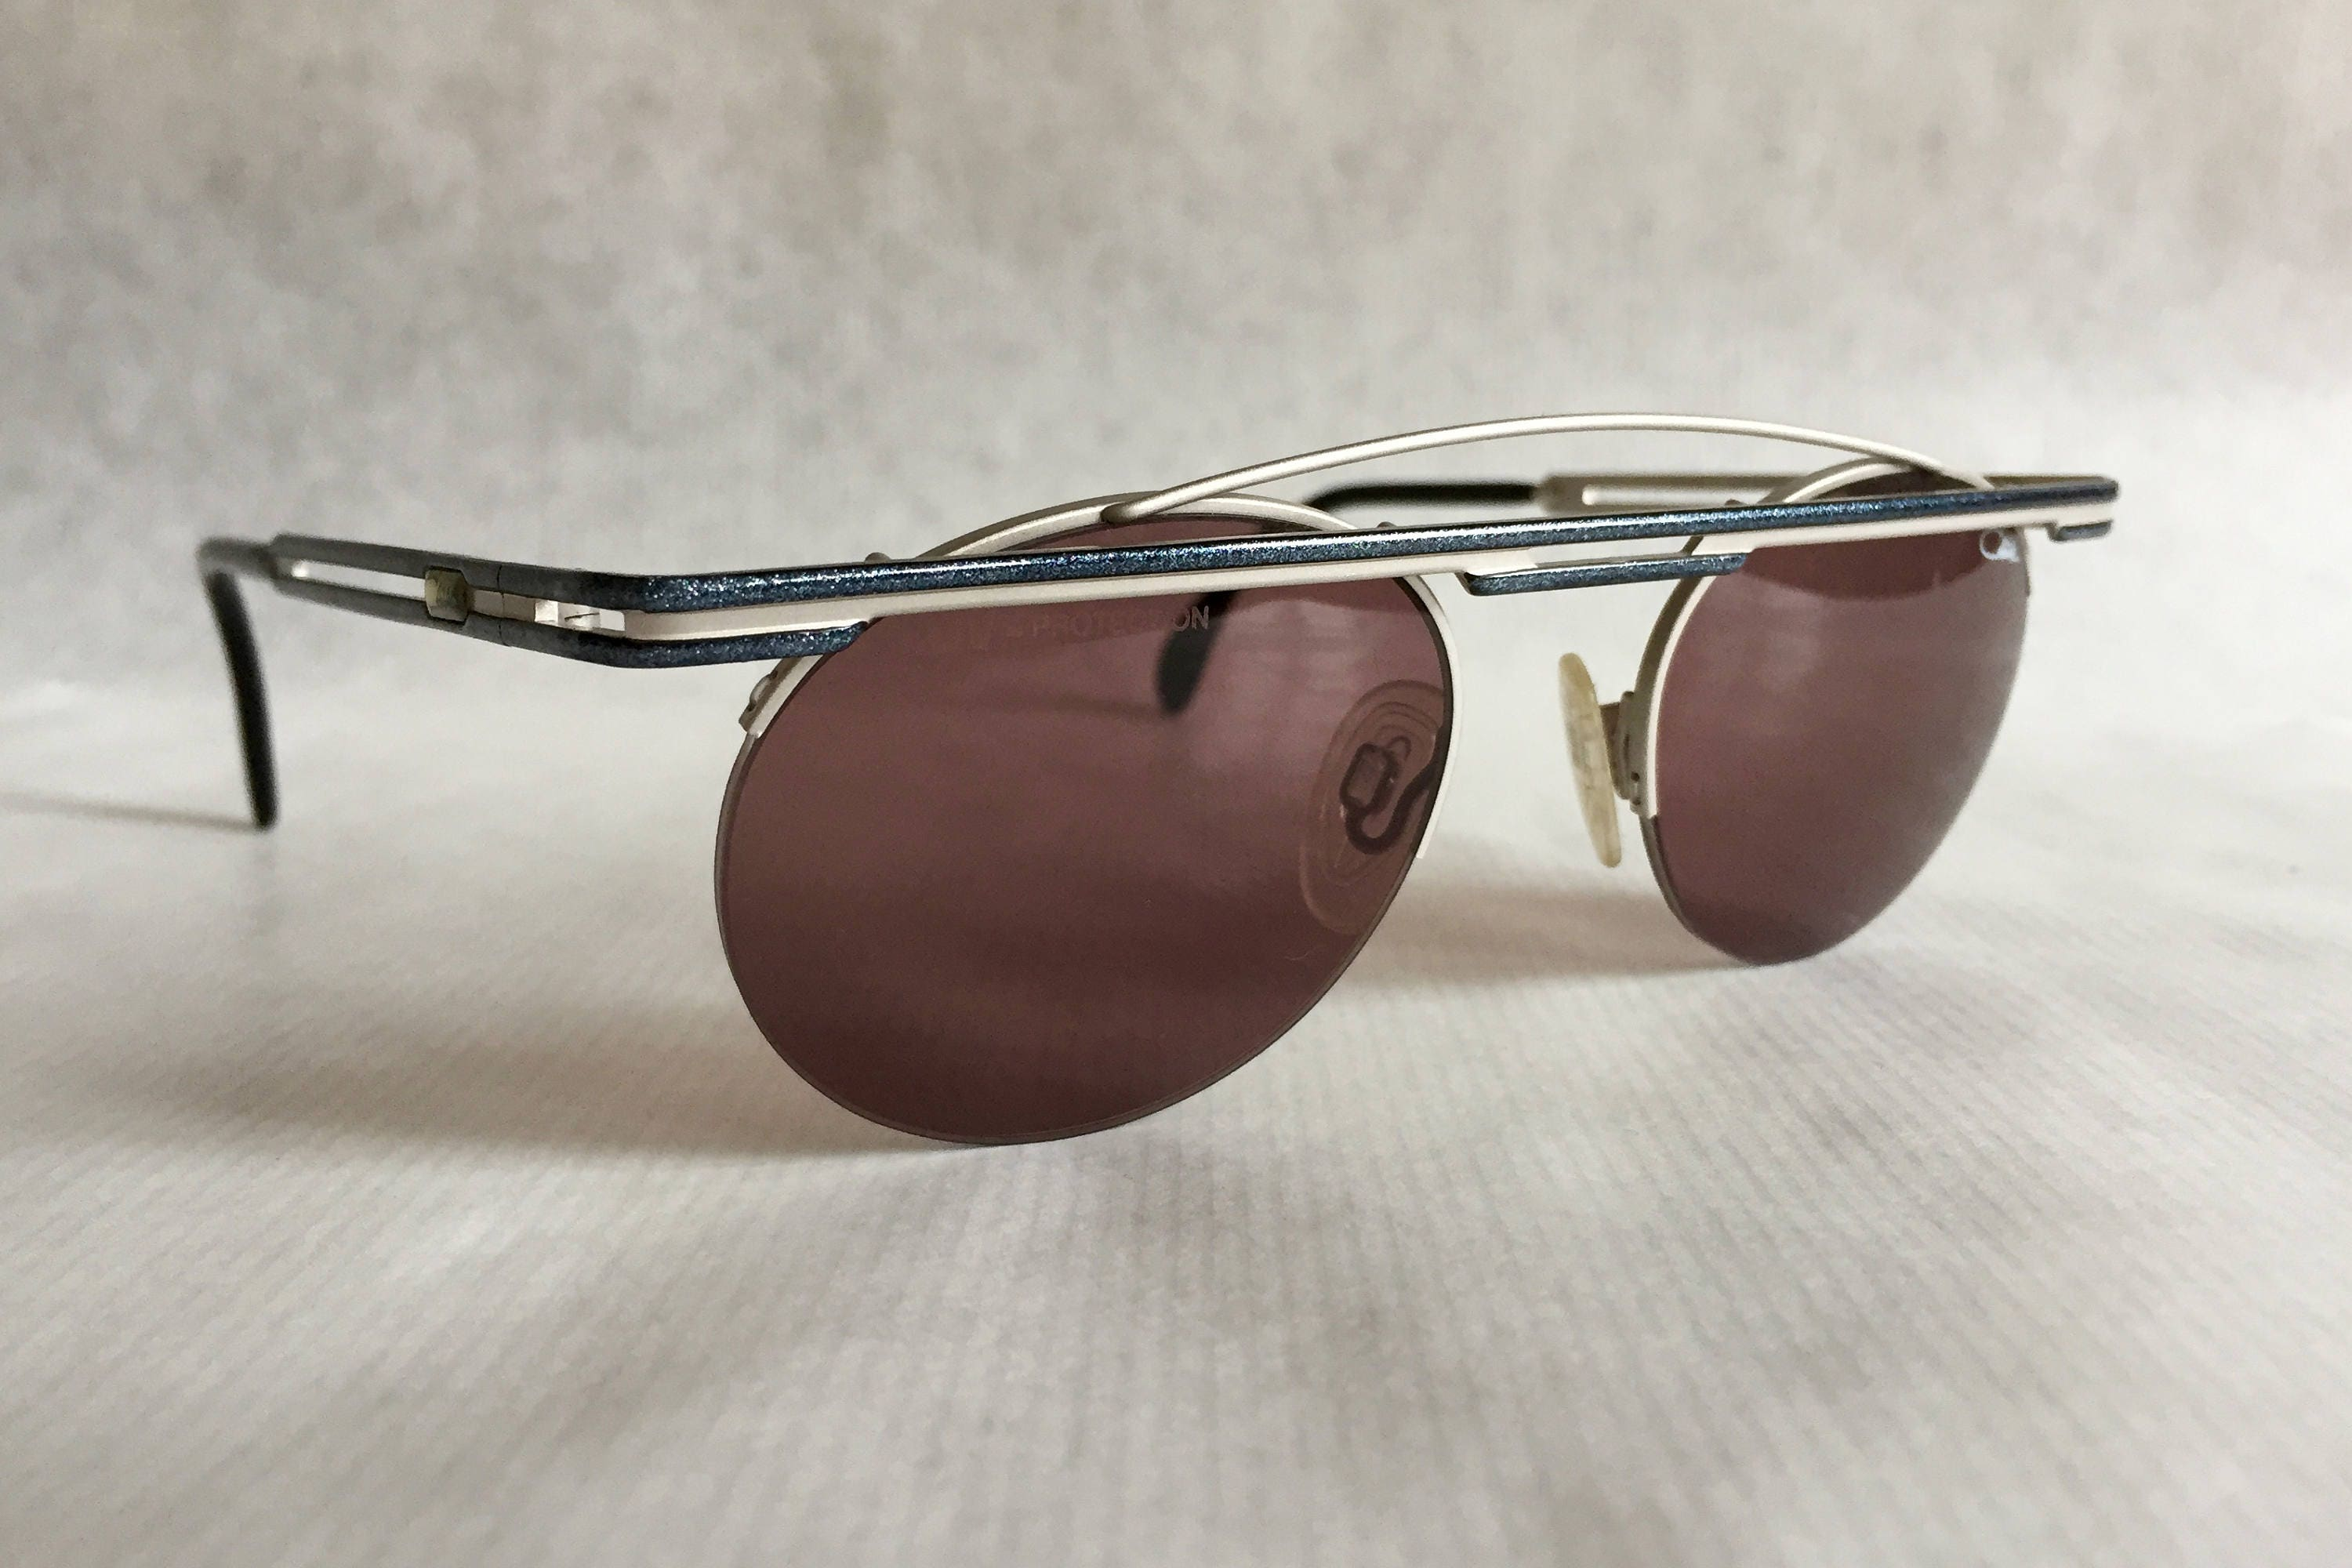 65c7562e24 Cazal 748 3 Col 396 Vintage Sunglasses Made in West Germany New ...